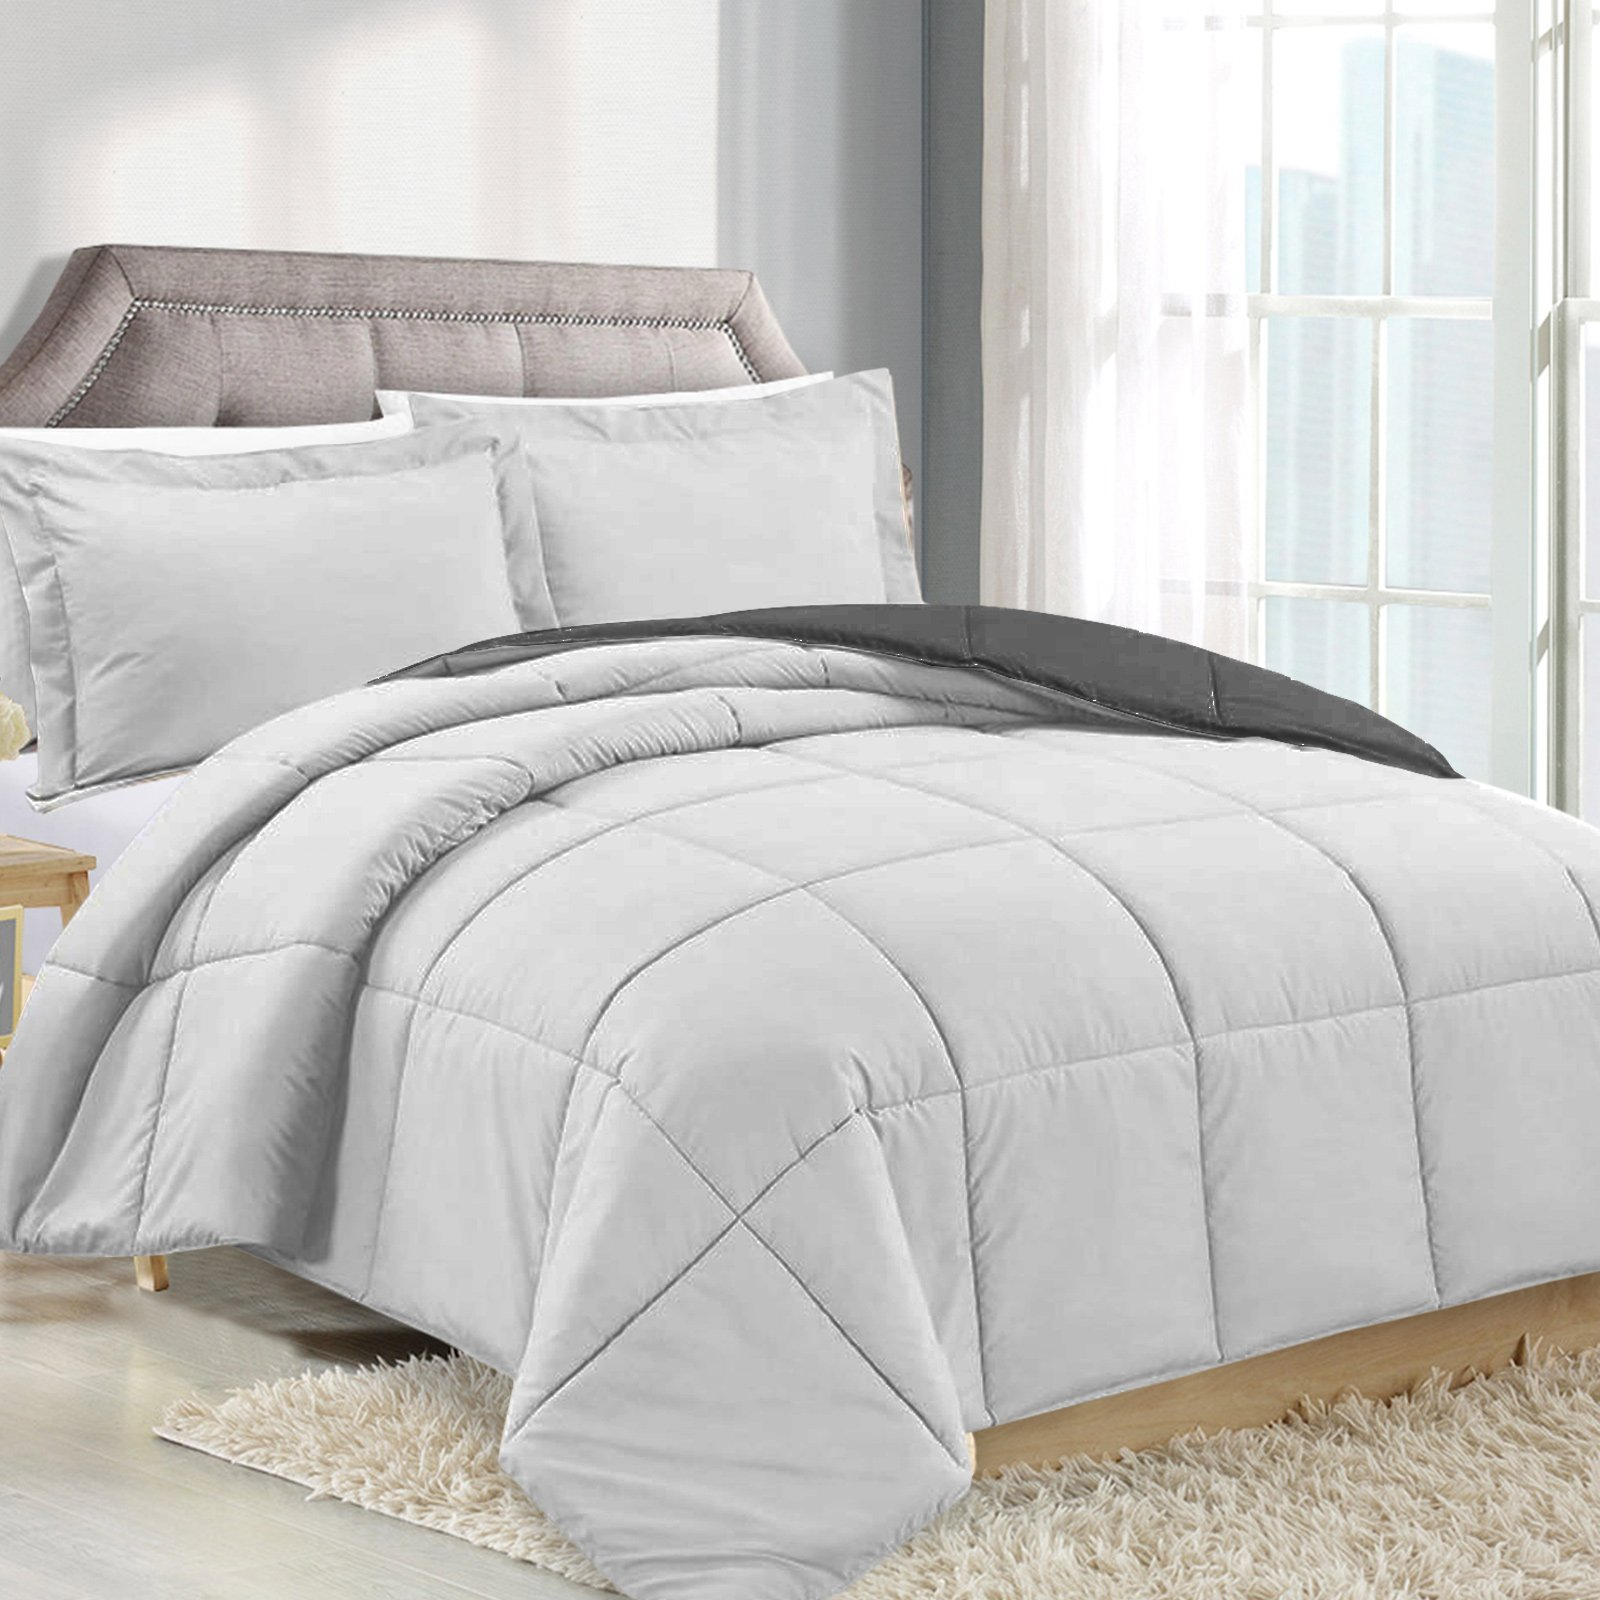 King Comforter Reversible Duvet Insert - Silver/Gray - Hypoallergenic, Plush Siliconized Fiberfill, Box Stitched, Luxury Goose Down Alternative Comforter, Protects Against Dust and Allergens